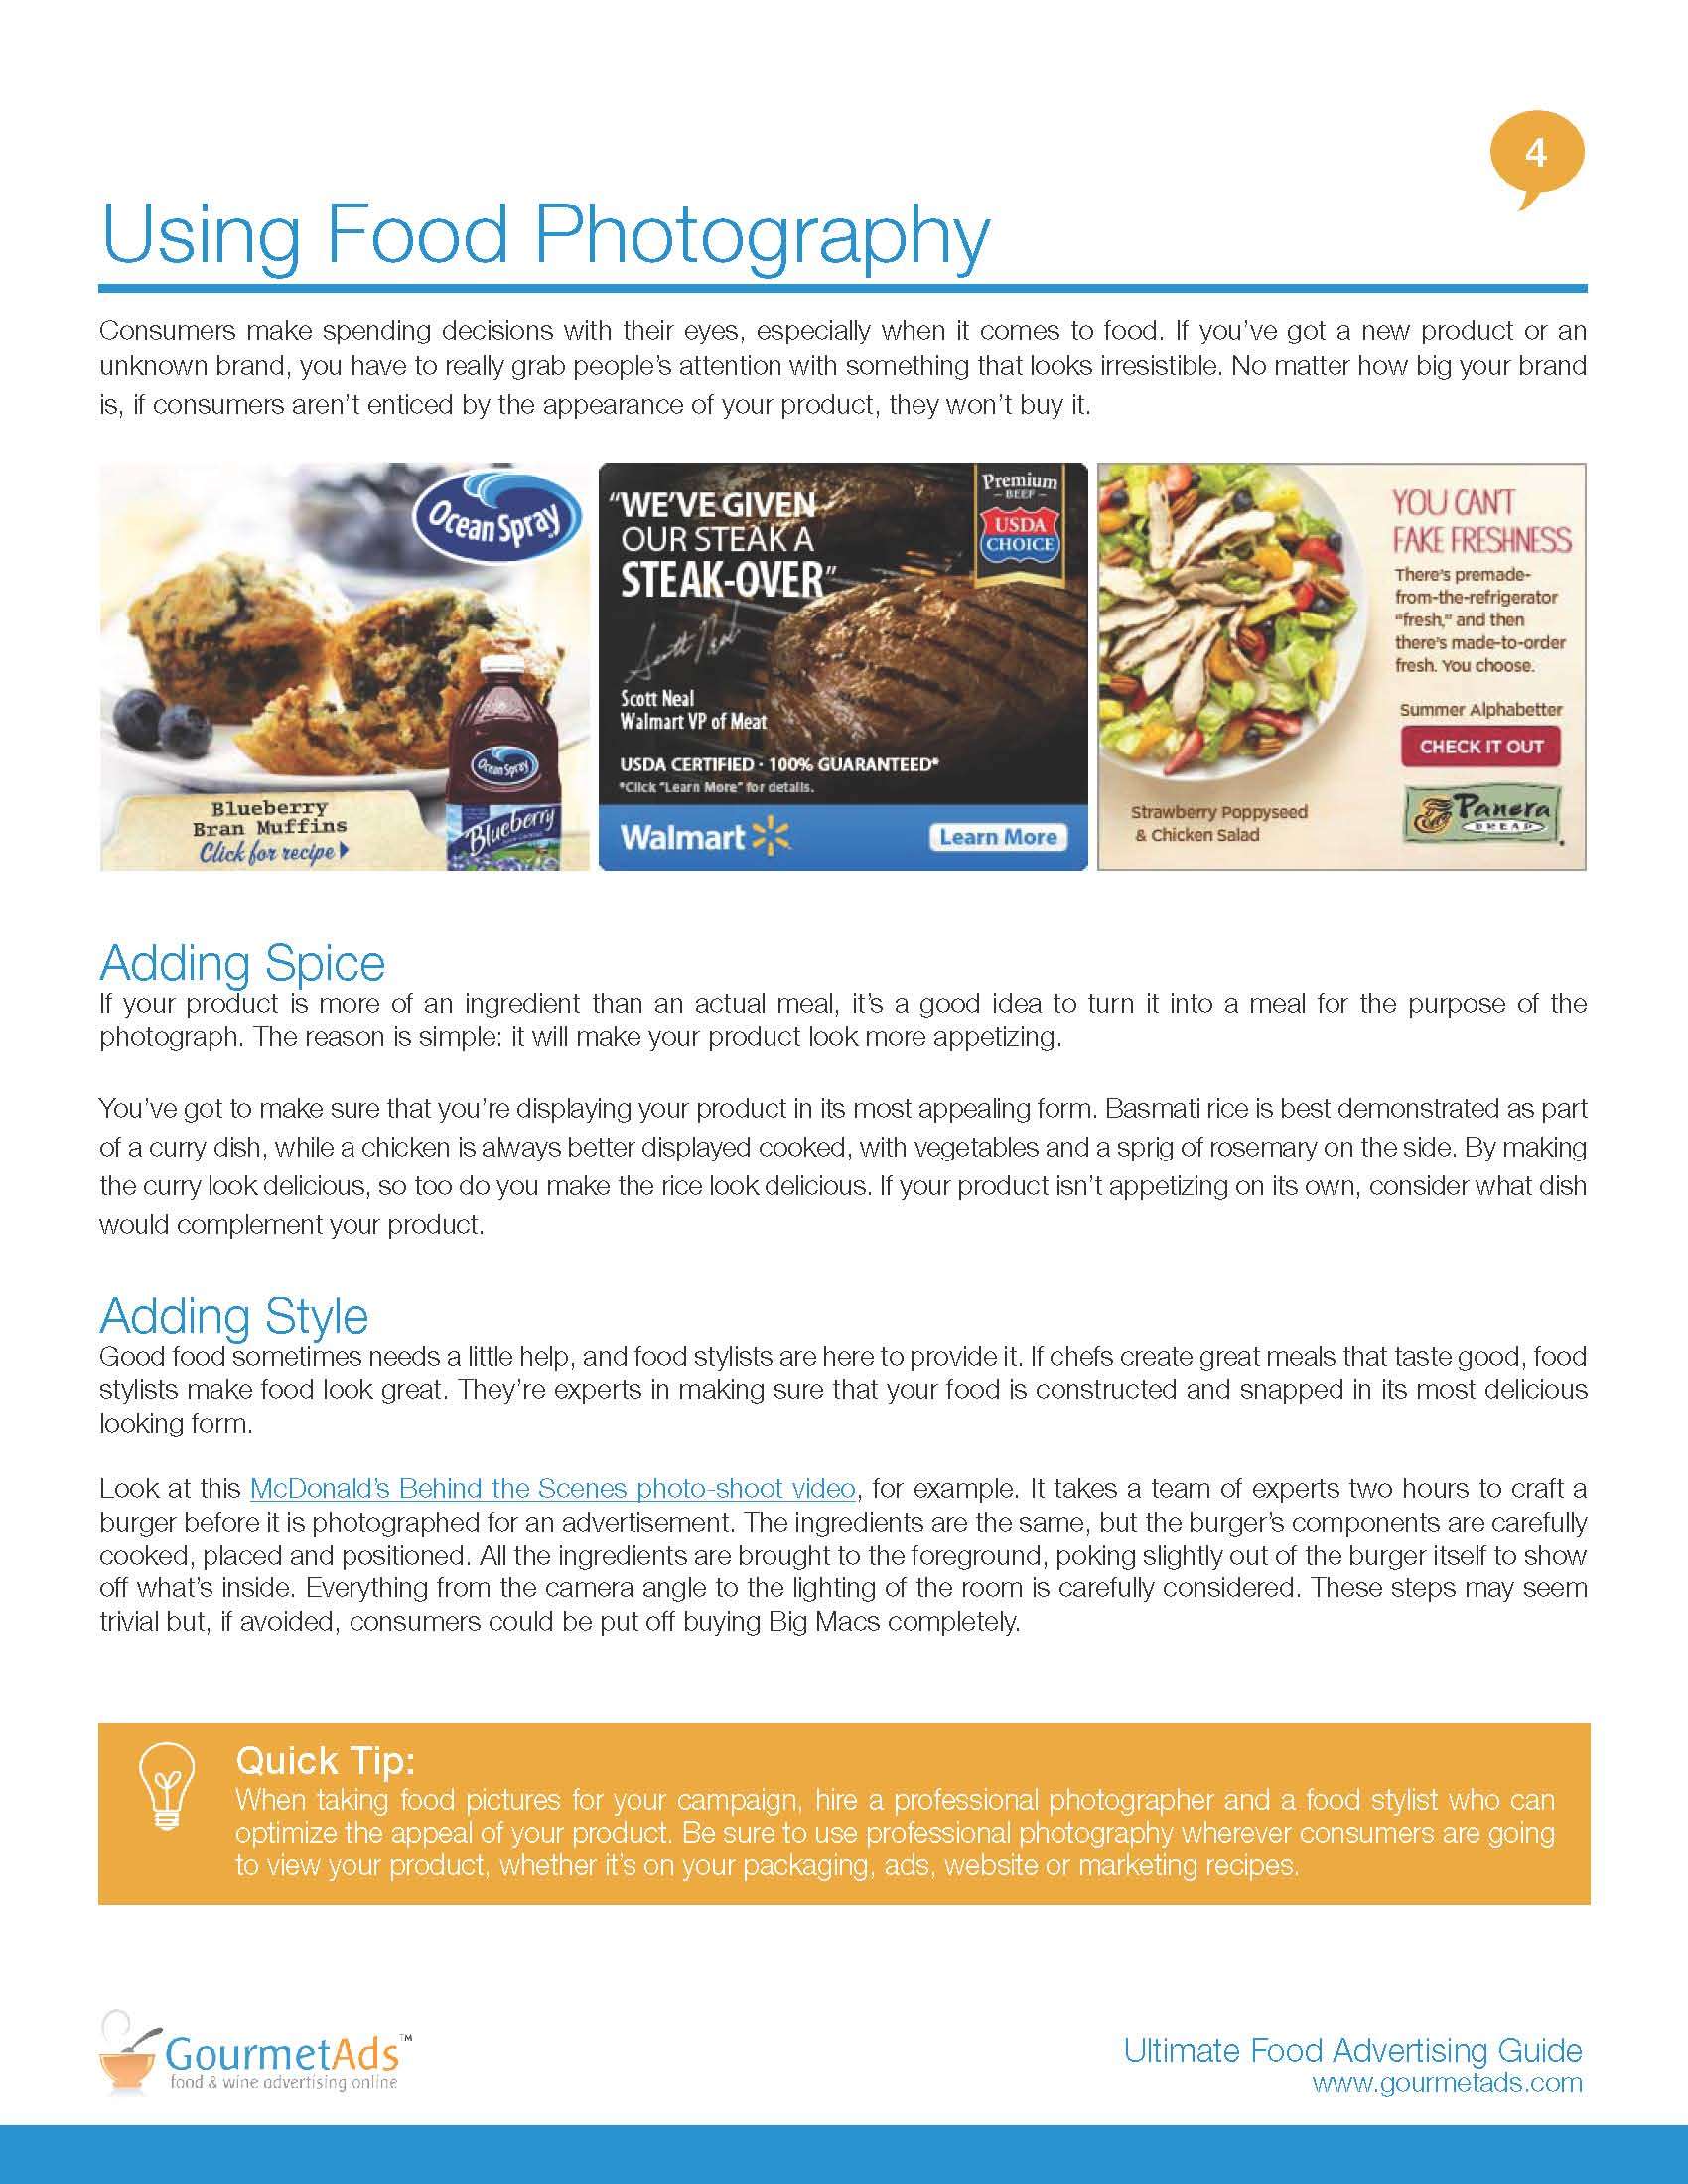 global ad network gourmet ads offers tips for food manufacturers ultimate guide to food advertising online using photographywhitepaper page using photography